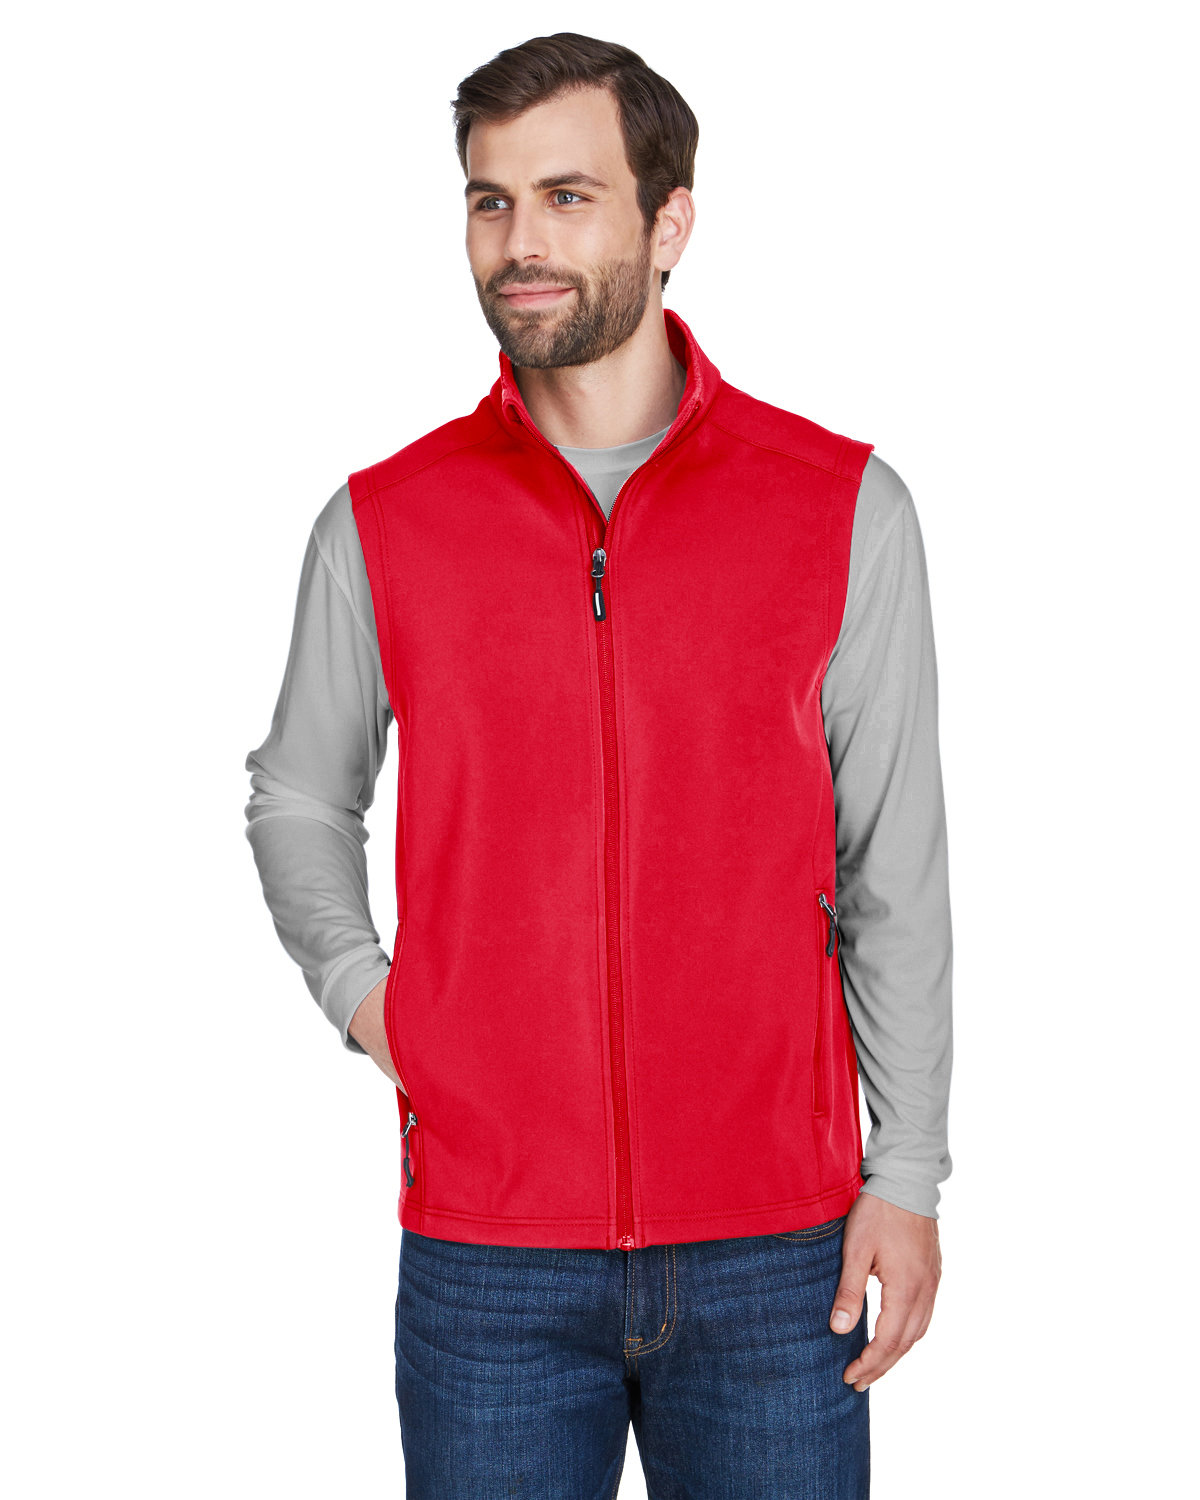 Core 365 Men's Cruise Two-Layer Fleece Bonded Soft Shell Vest CLASSIC RED